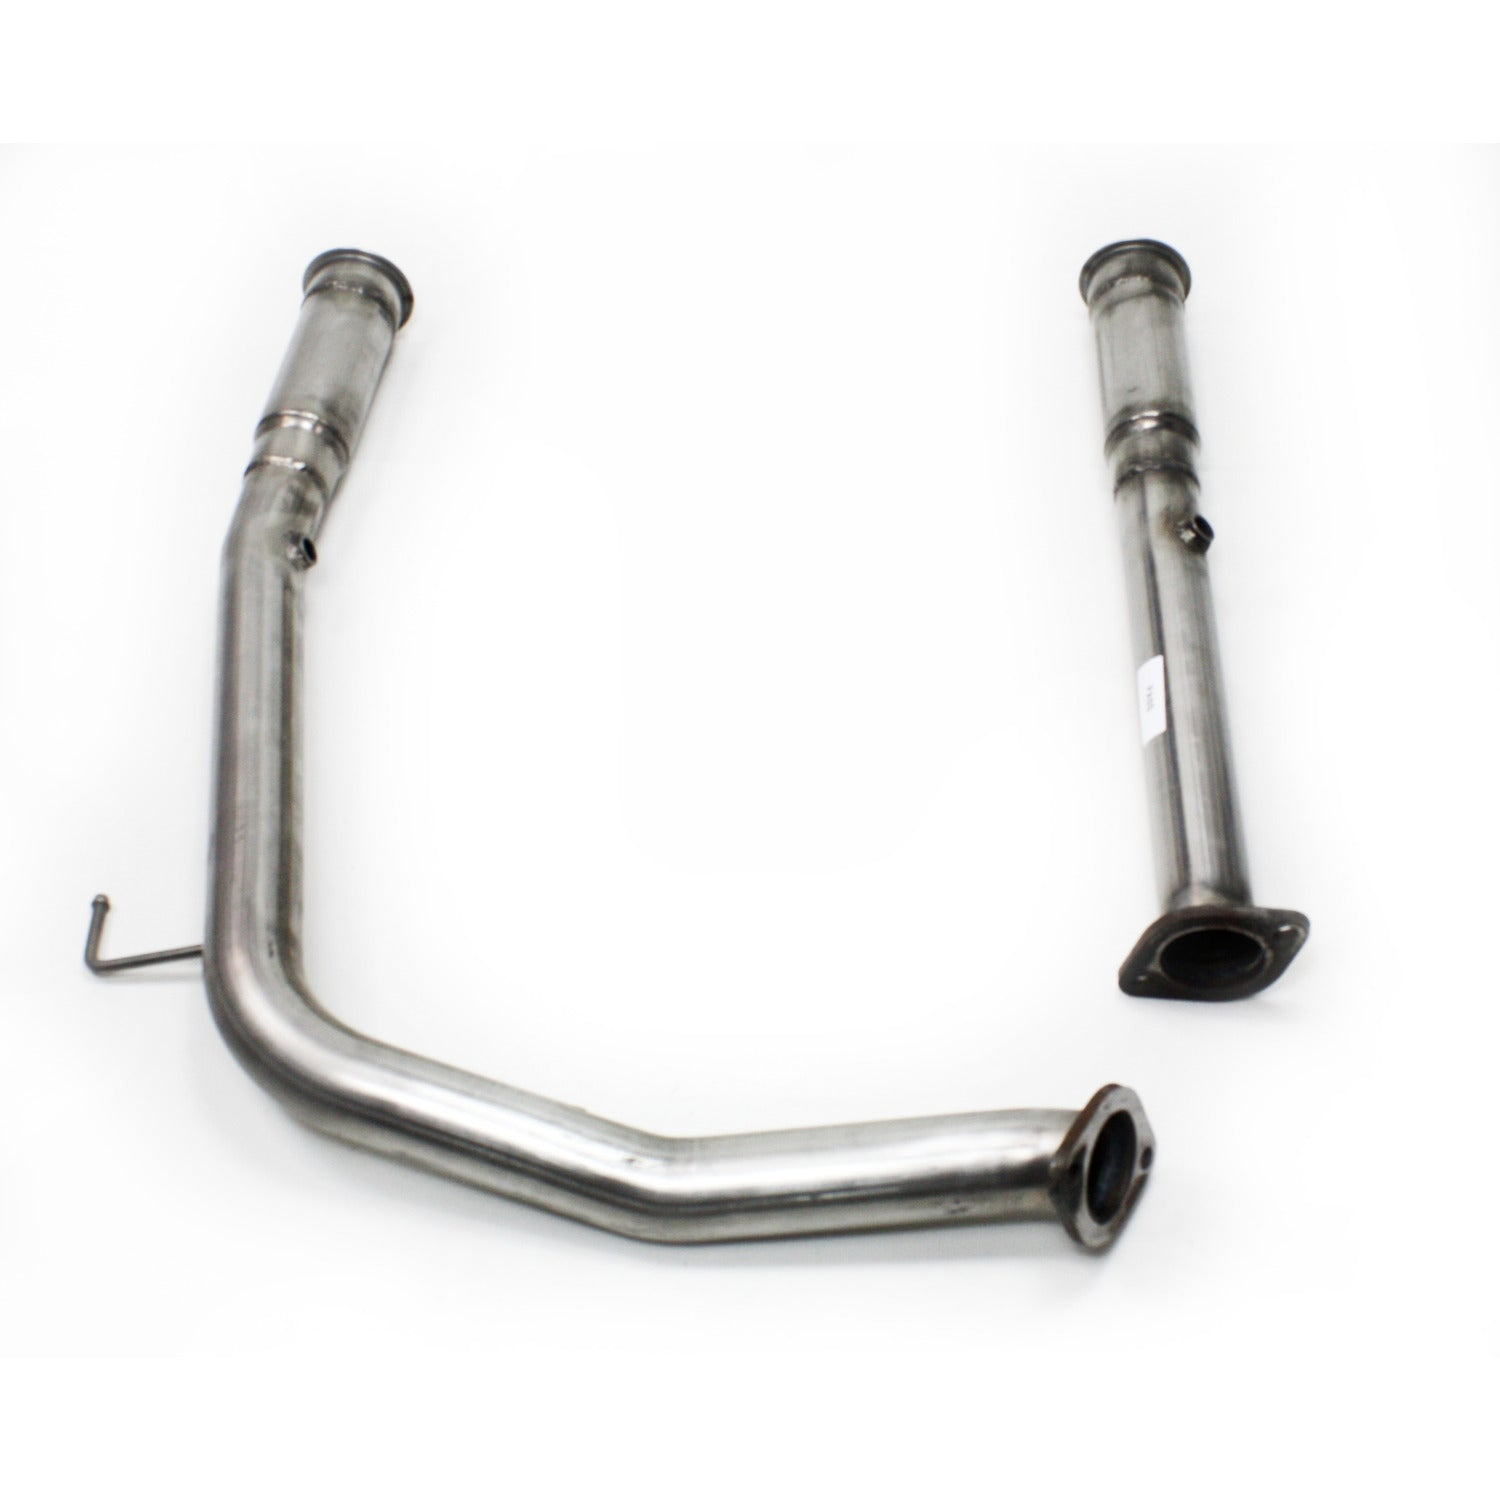 "JBA Performance Exhaust 6012SD 2007-09 5.7L Toyota Tundra 2007-09 5.7L Toyota Tundra 3"" to 2.5"" 409 Stainless Steel Mid-pipes for Use With 6012 series Long Tube Header"